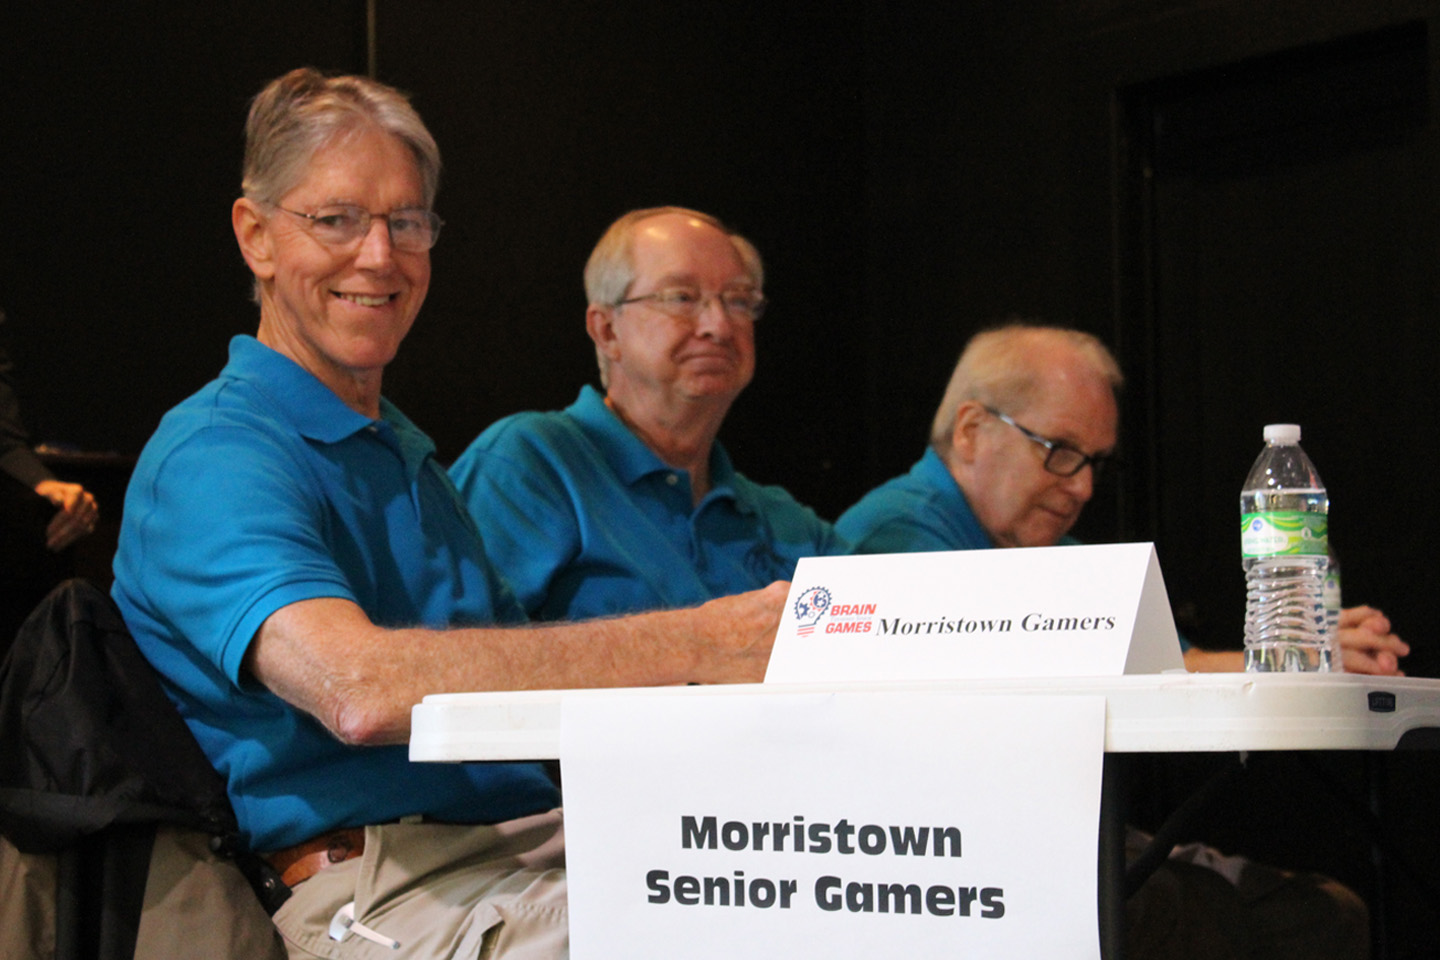 Former champs and championship hosts, Morristown's Senior Gamers.